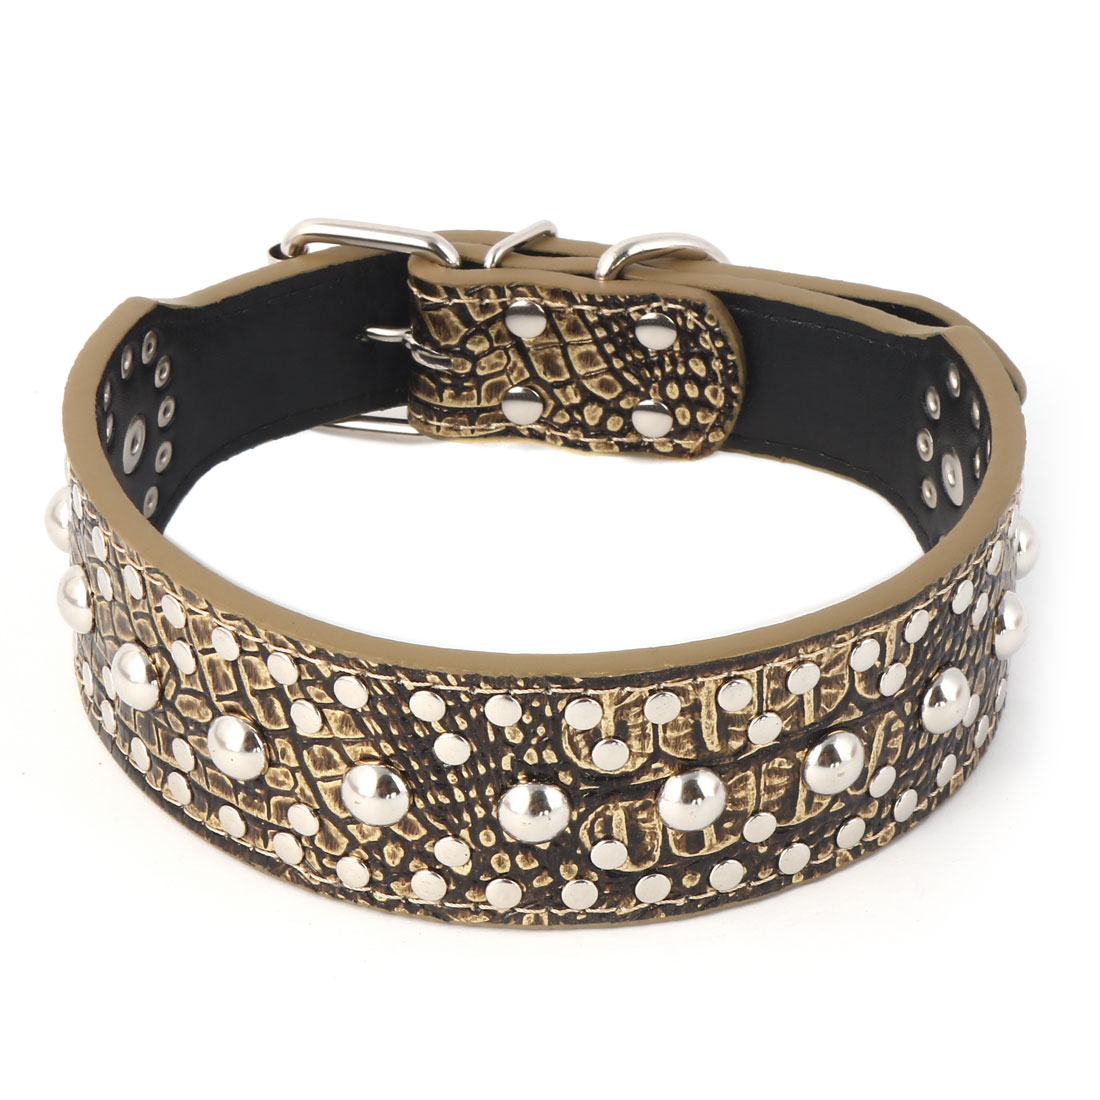 Pet Faux Leather Rivet Spiked Studded Crocodile Grain Dog Collar Neck Strap